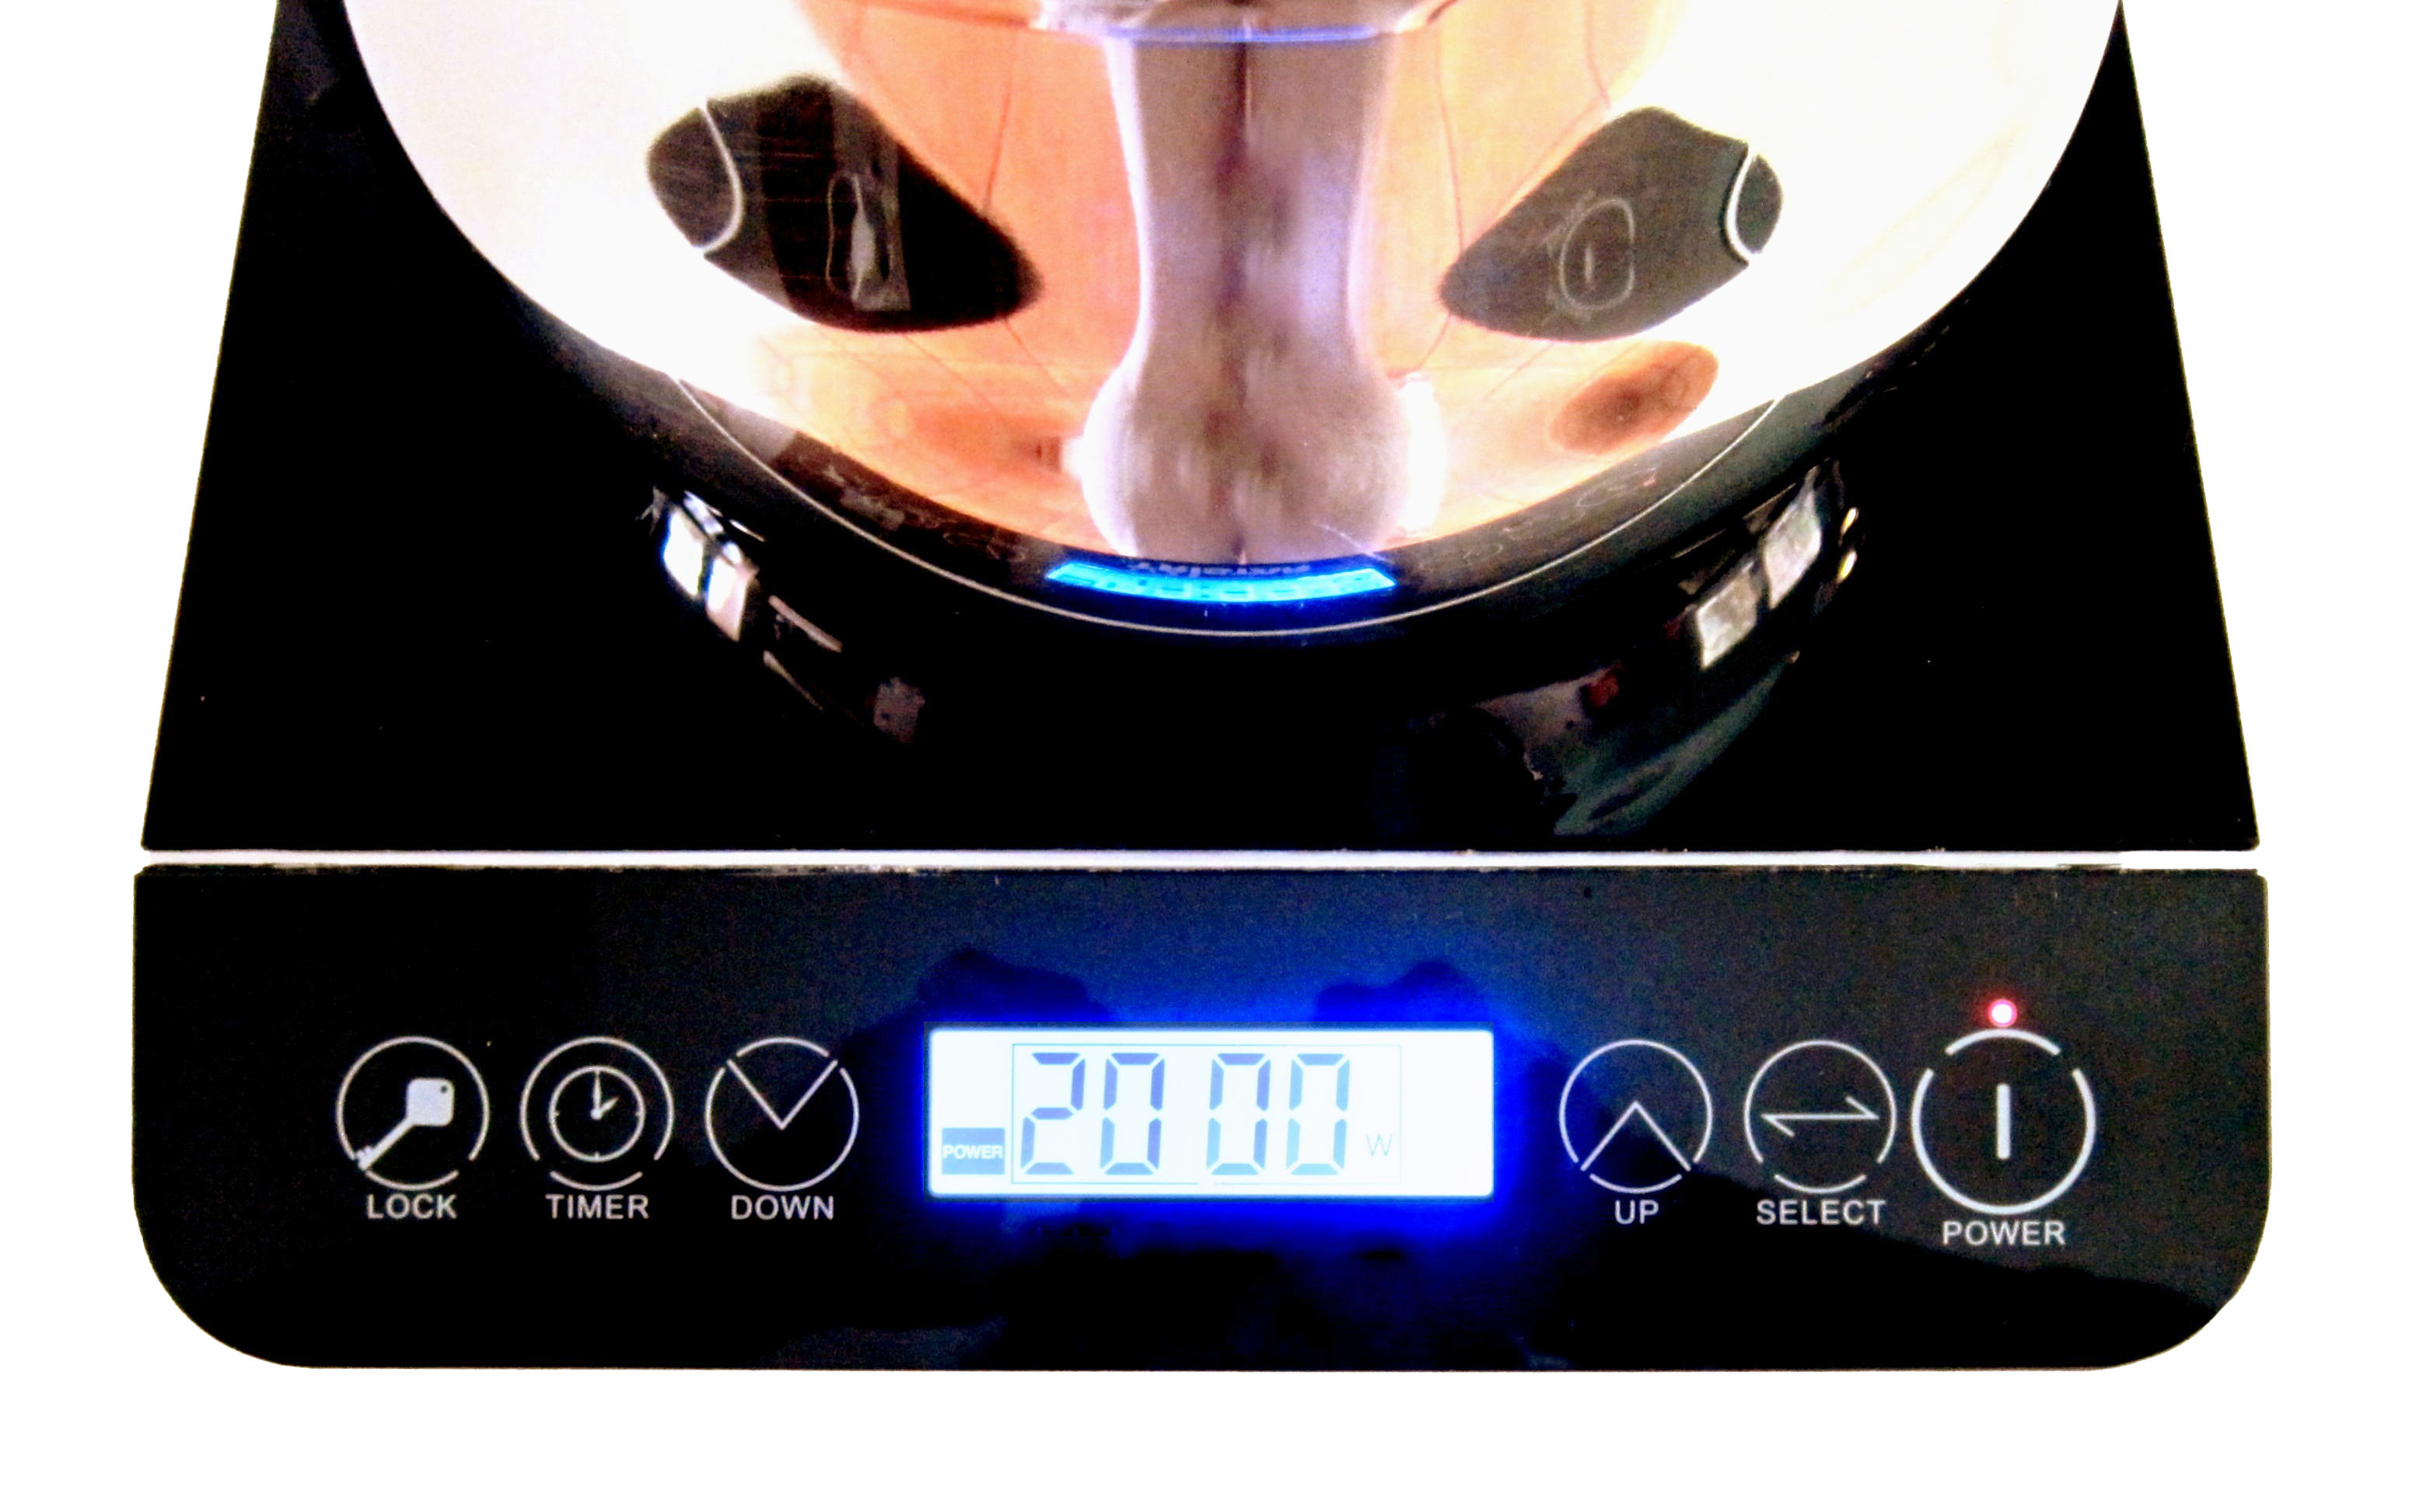 7 DOs DONTs of Pressure Cooking with Induction hip pressure